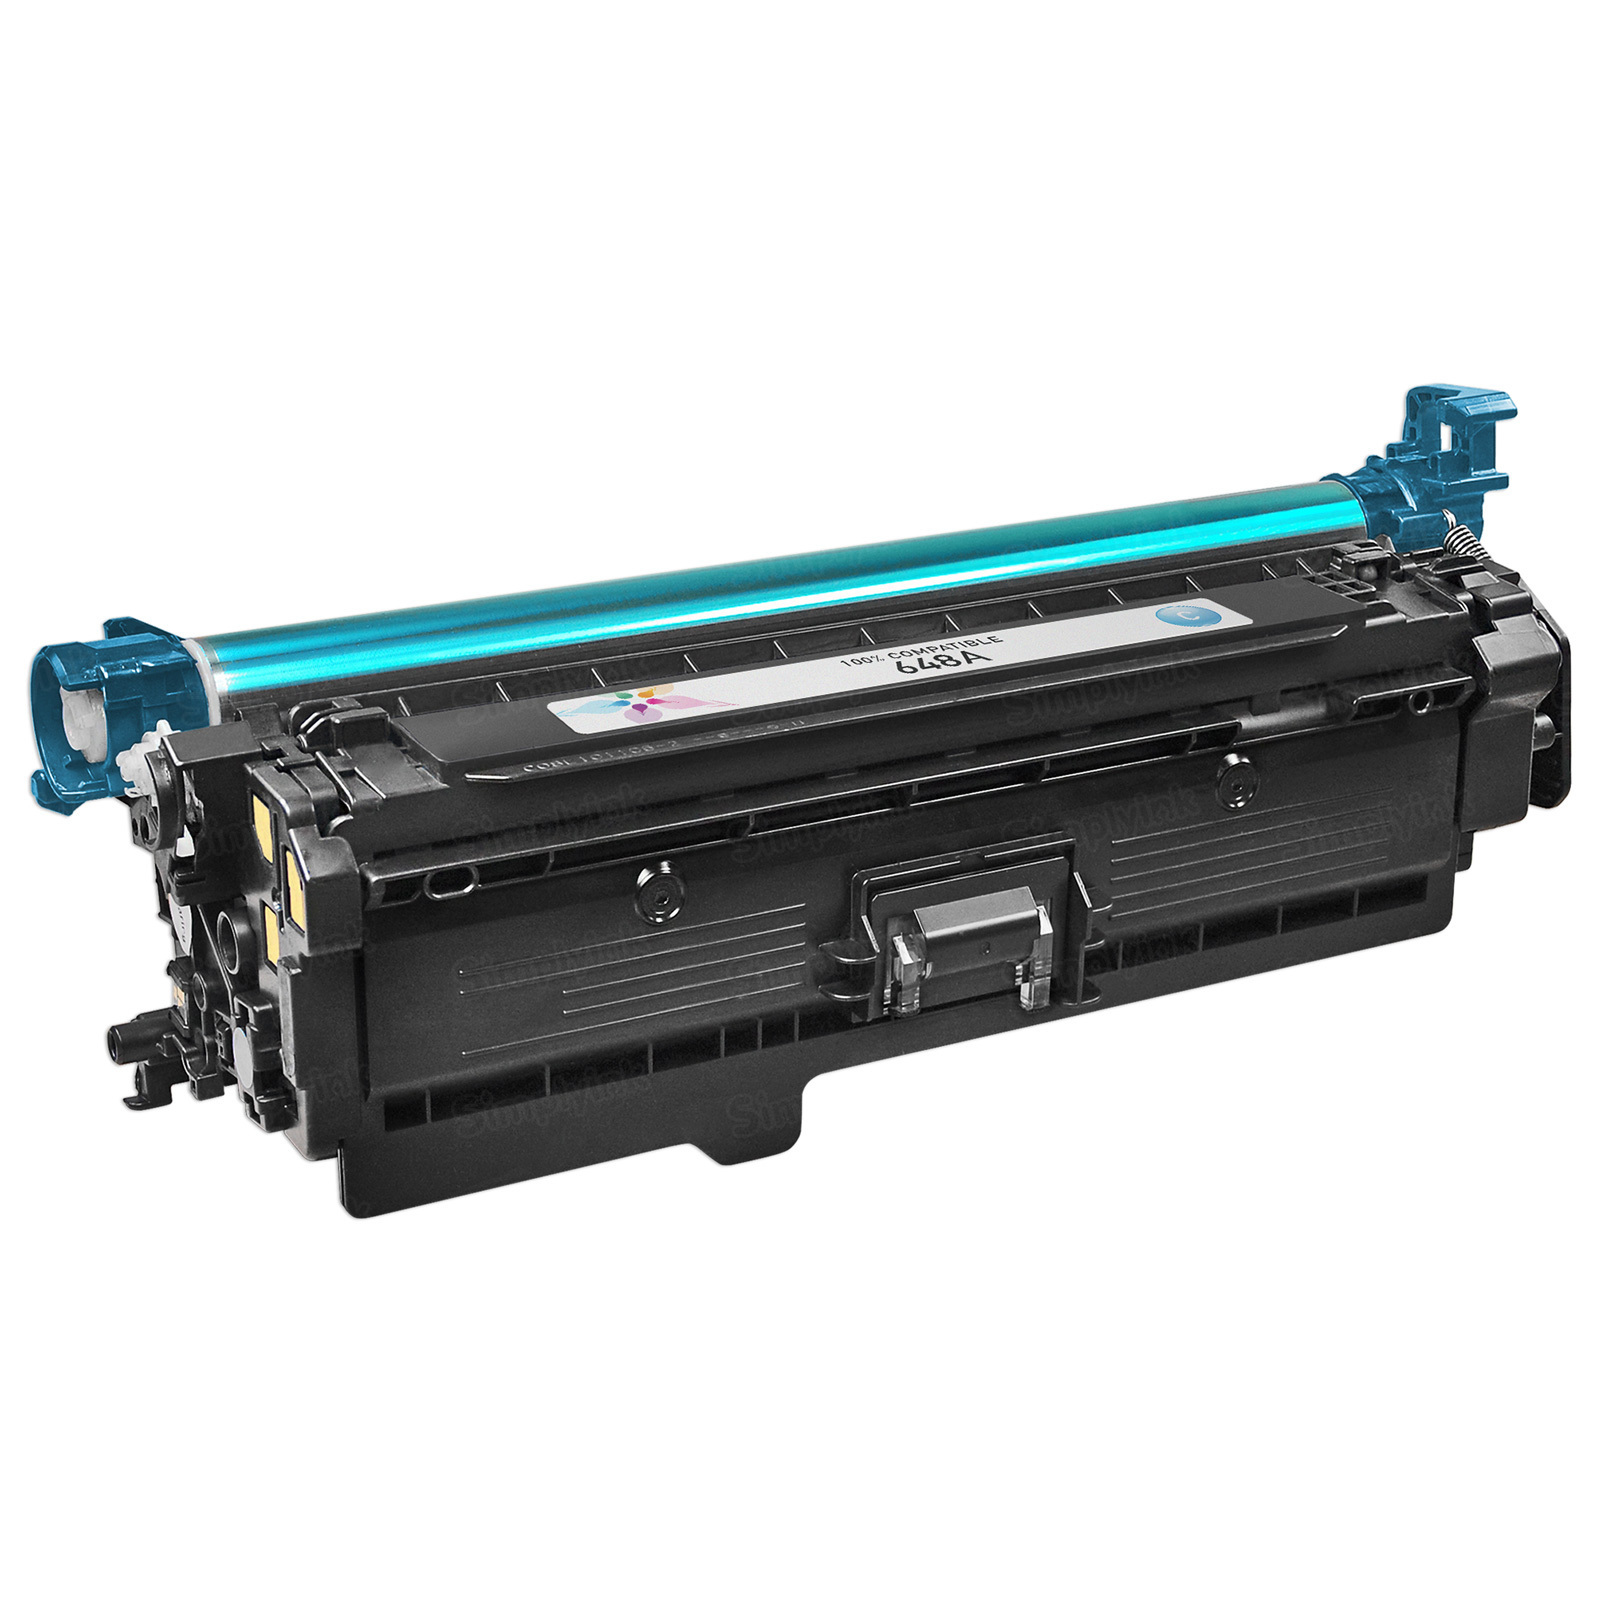 Remanufactured Replacement Cyan Laser Toner for HP 648A